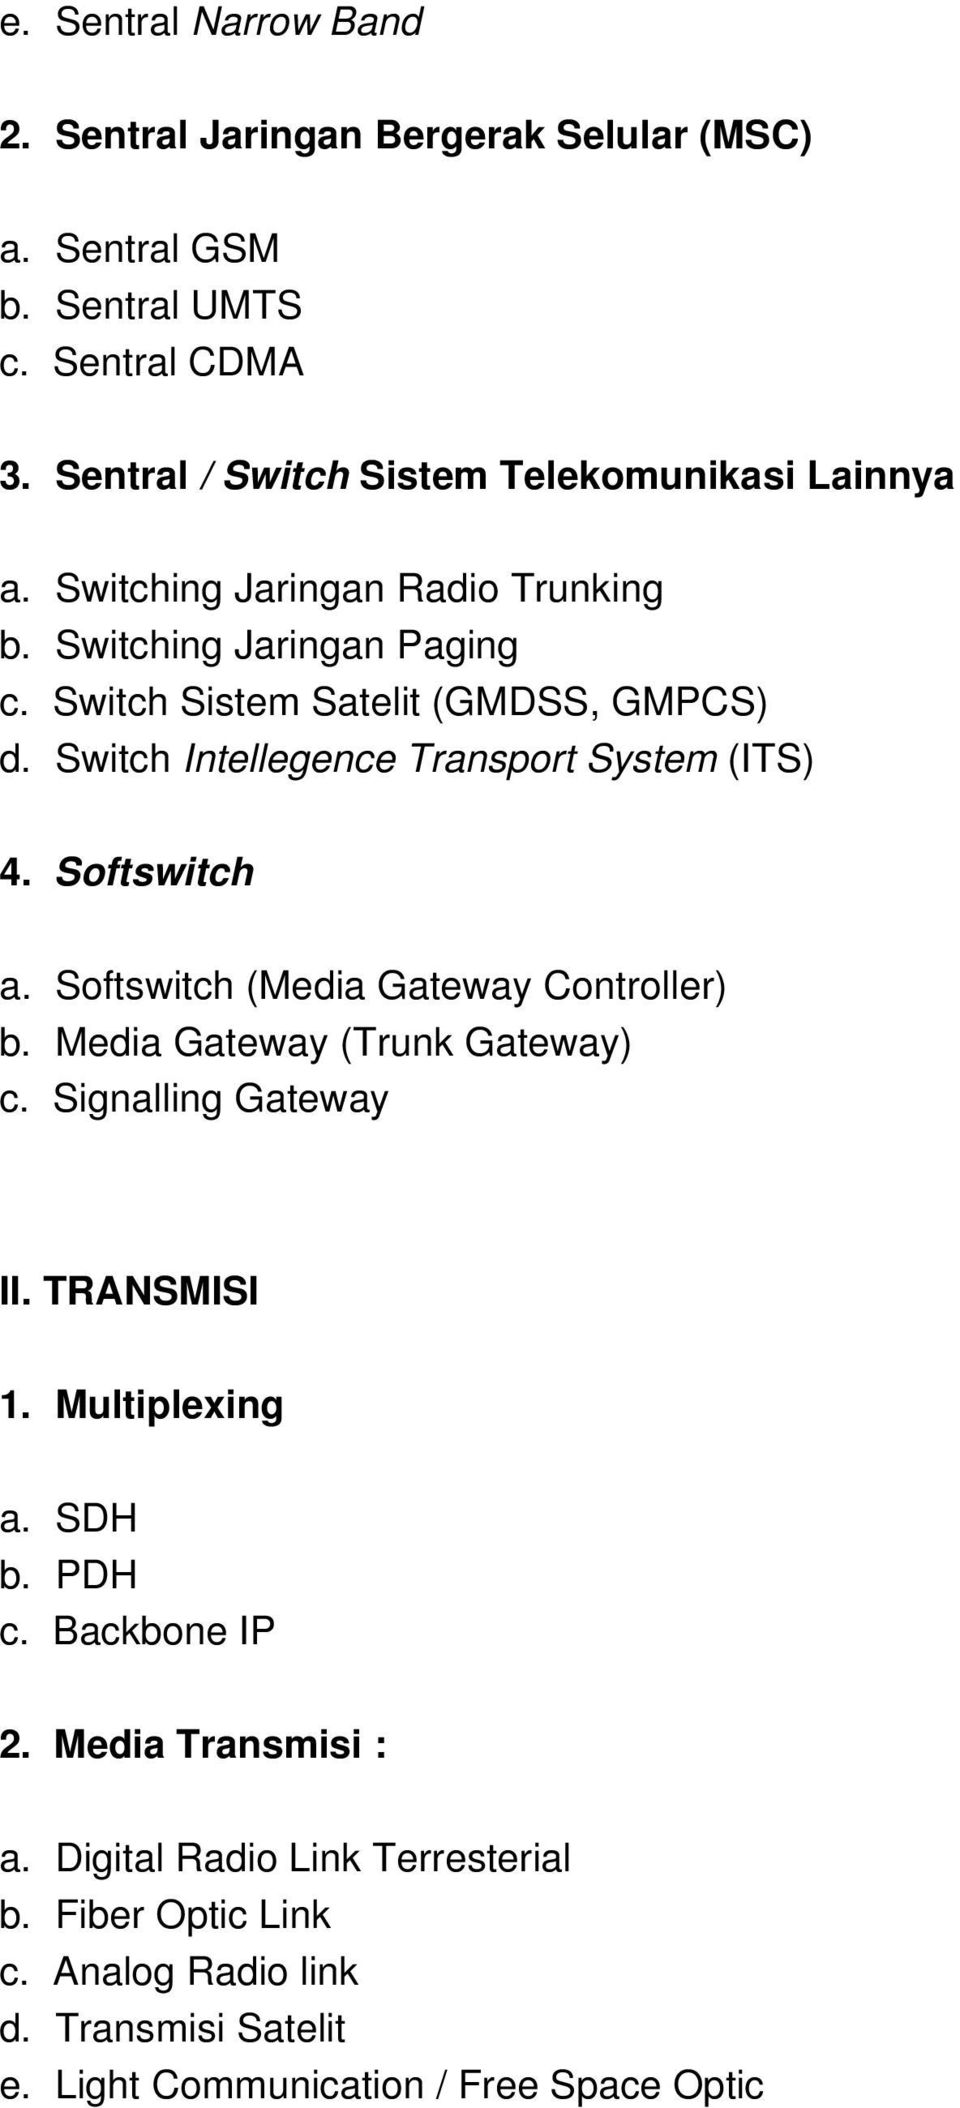 Switch Intellegence Transport System (ITS) 4. Softswitch a. Softswitch (Media Gateway Controller) b. Media Gateway (Trunk Gateway) c. Signalling Gateway II.